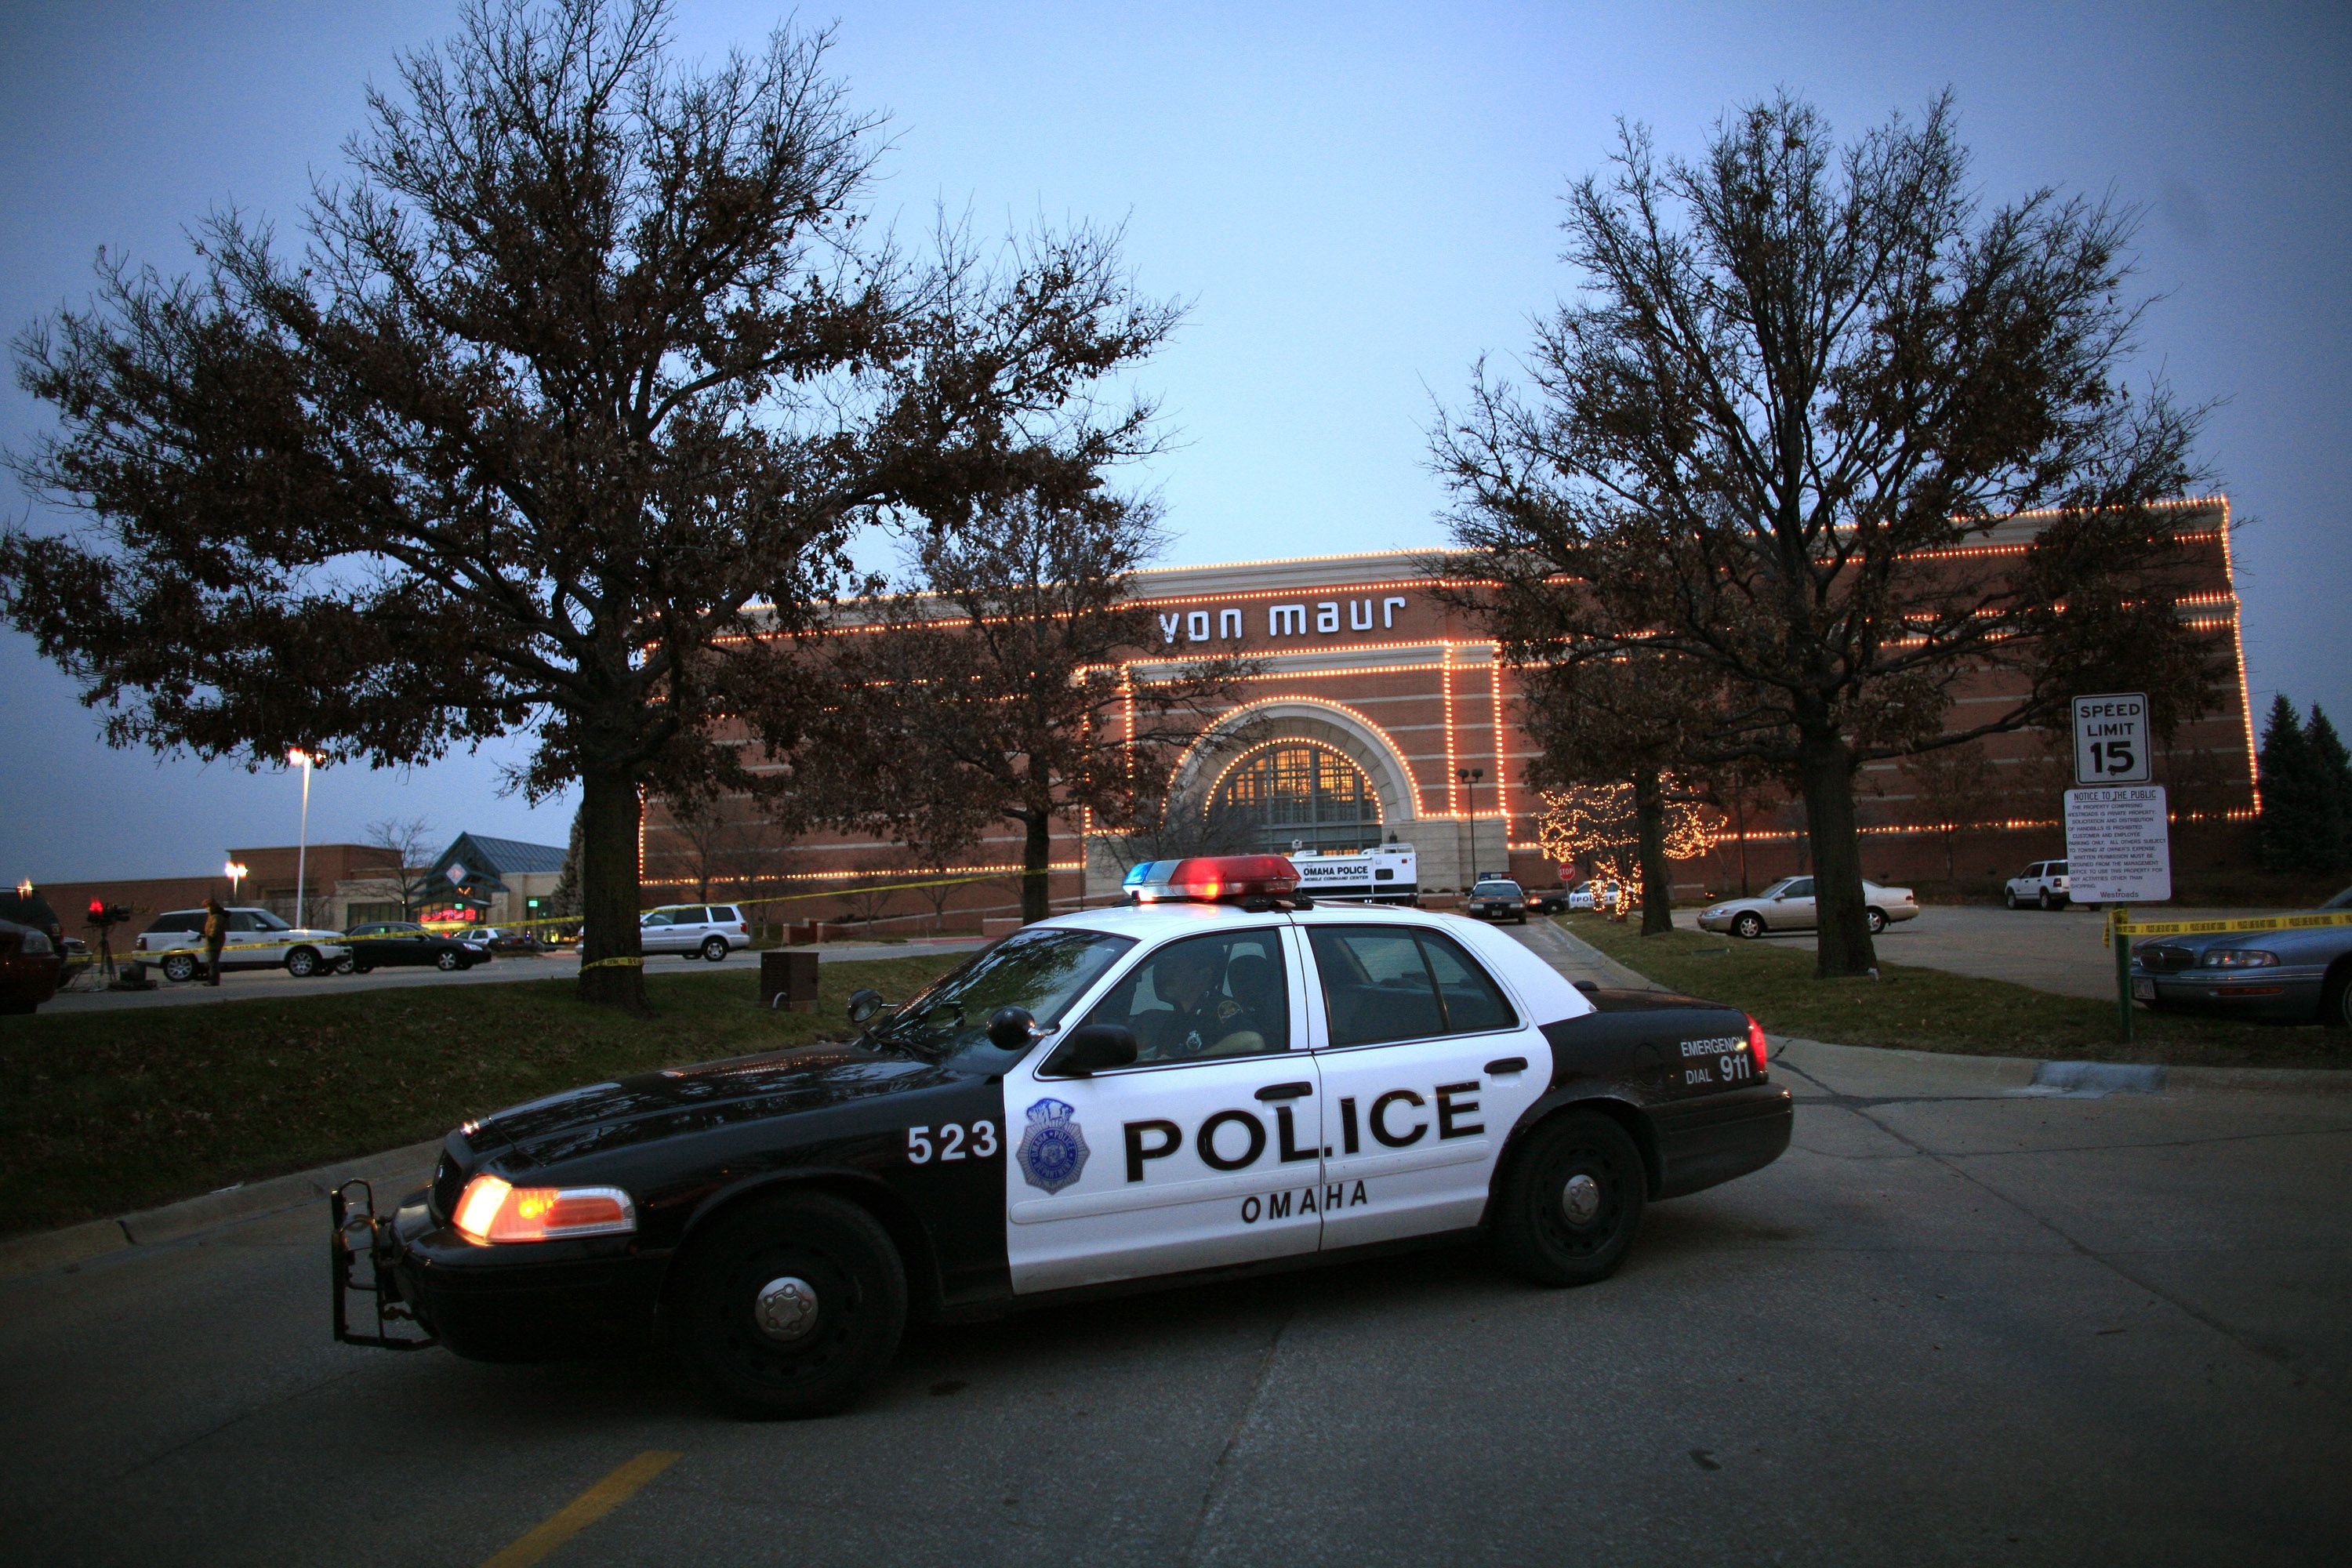 A police car sits in front of the Von Maur store at the Westroads Mall in Omaha, Nebraska